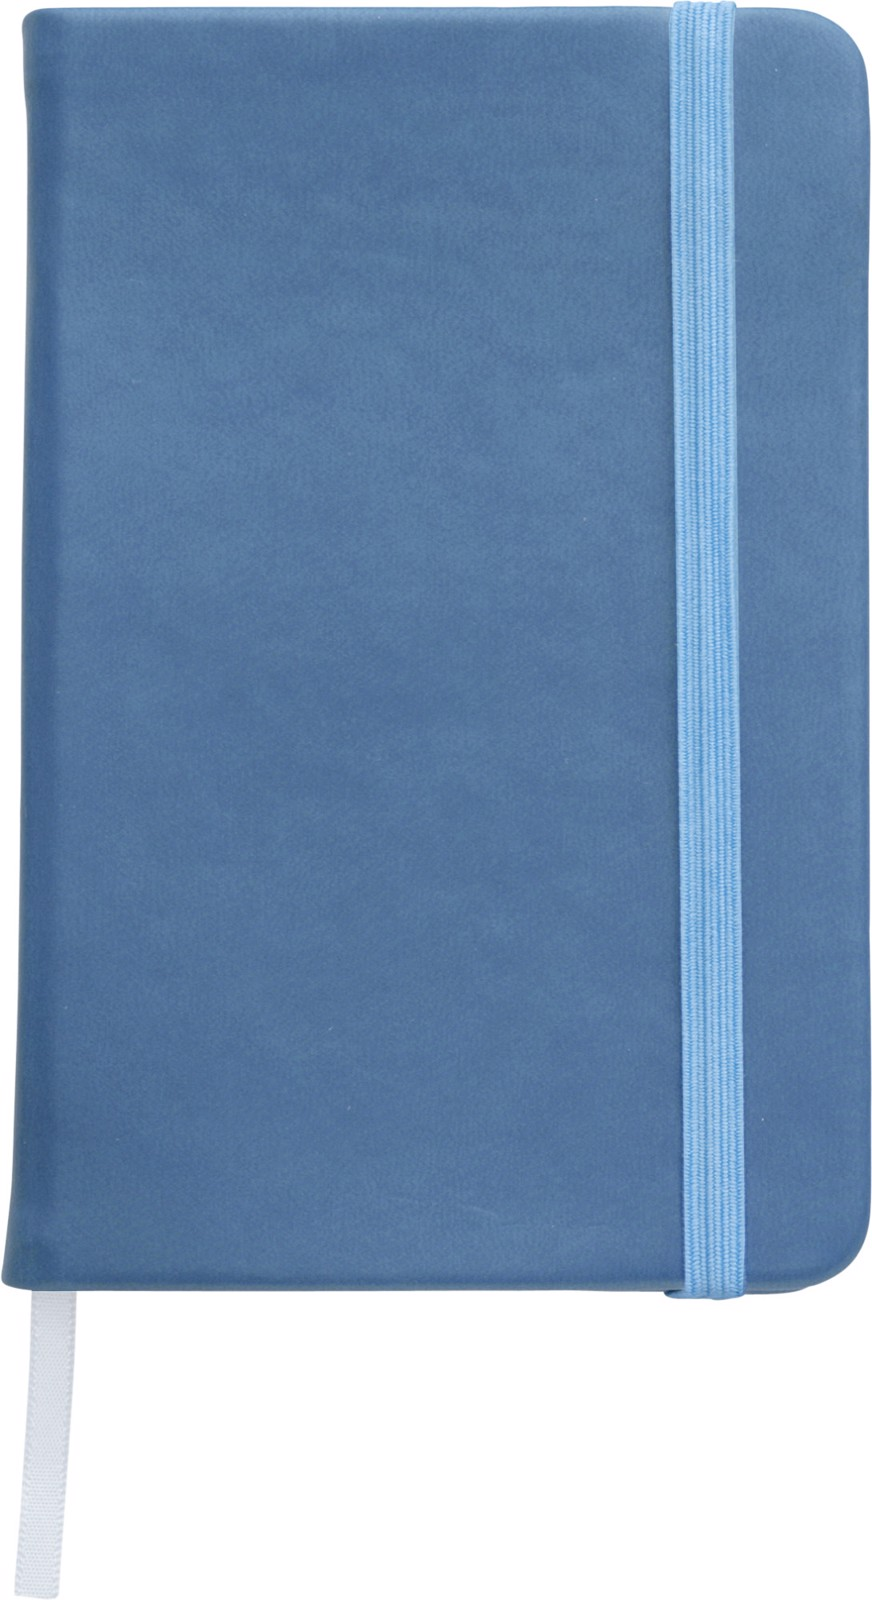 PU notebook - Light Blue